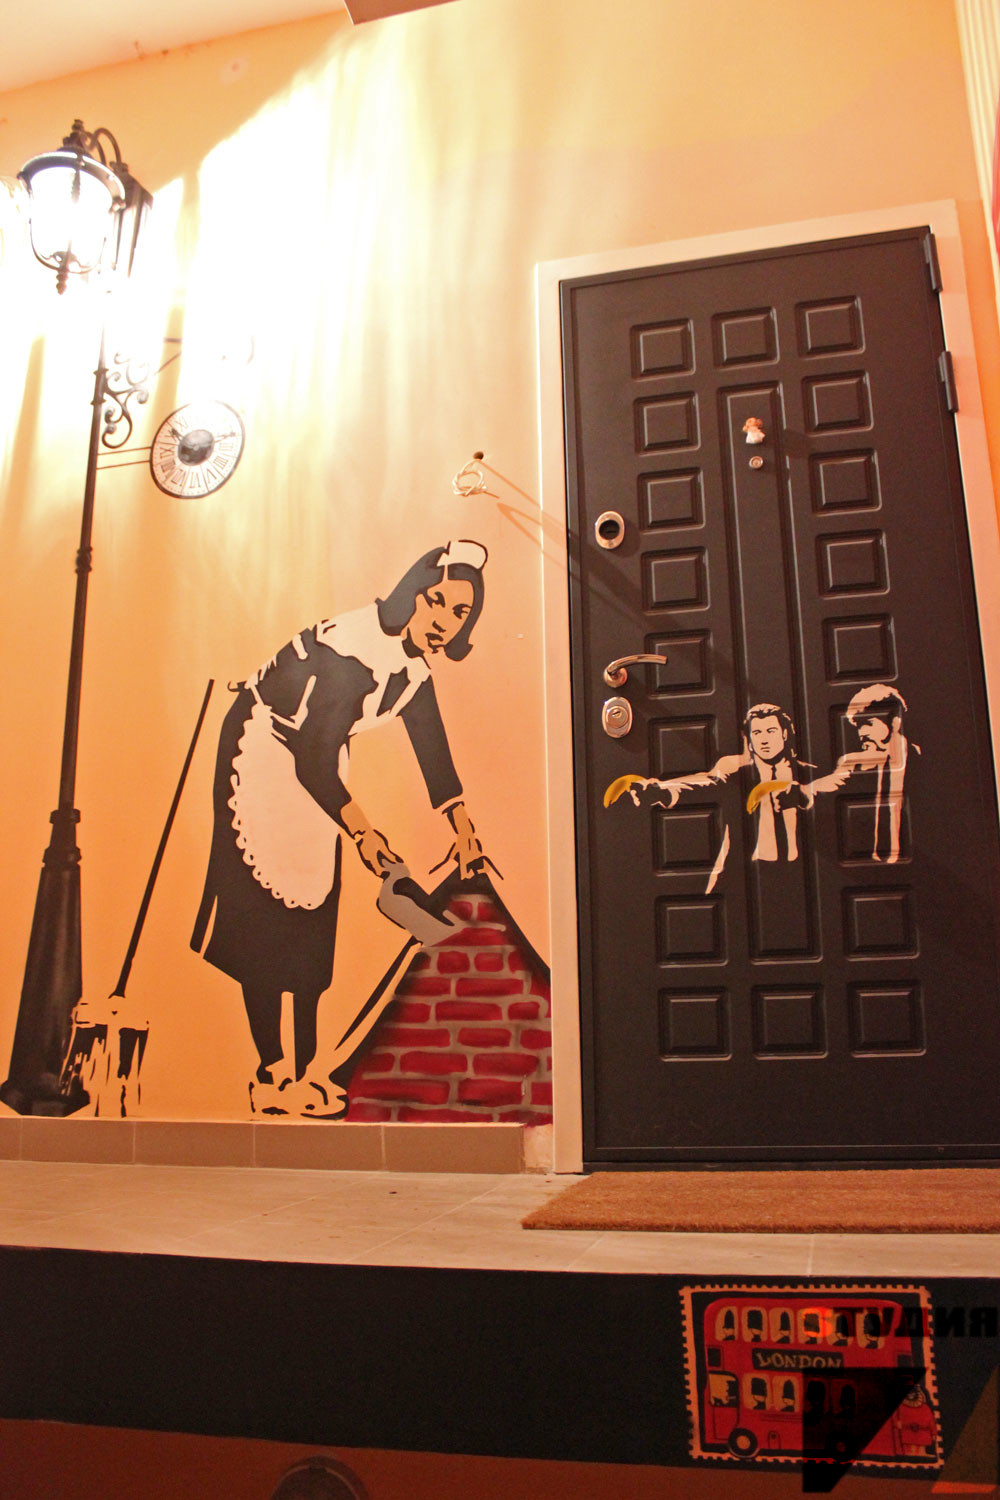 Banksy maid, Pulp fiction